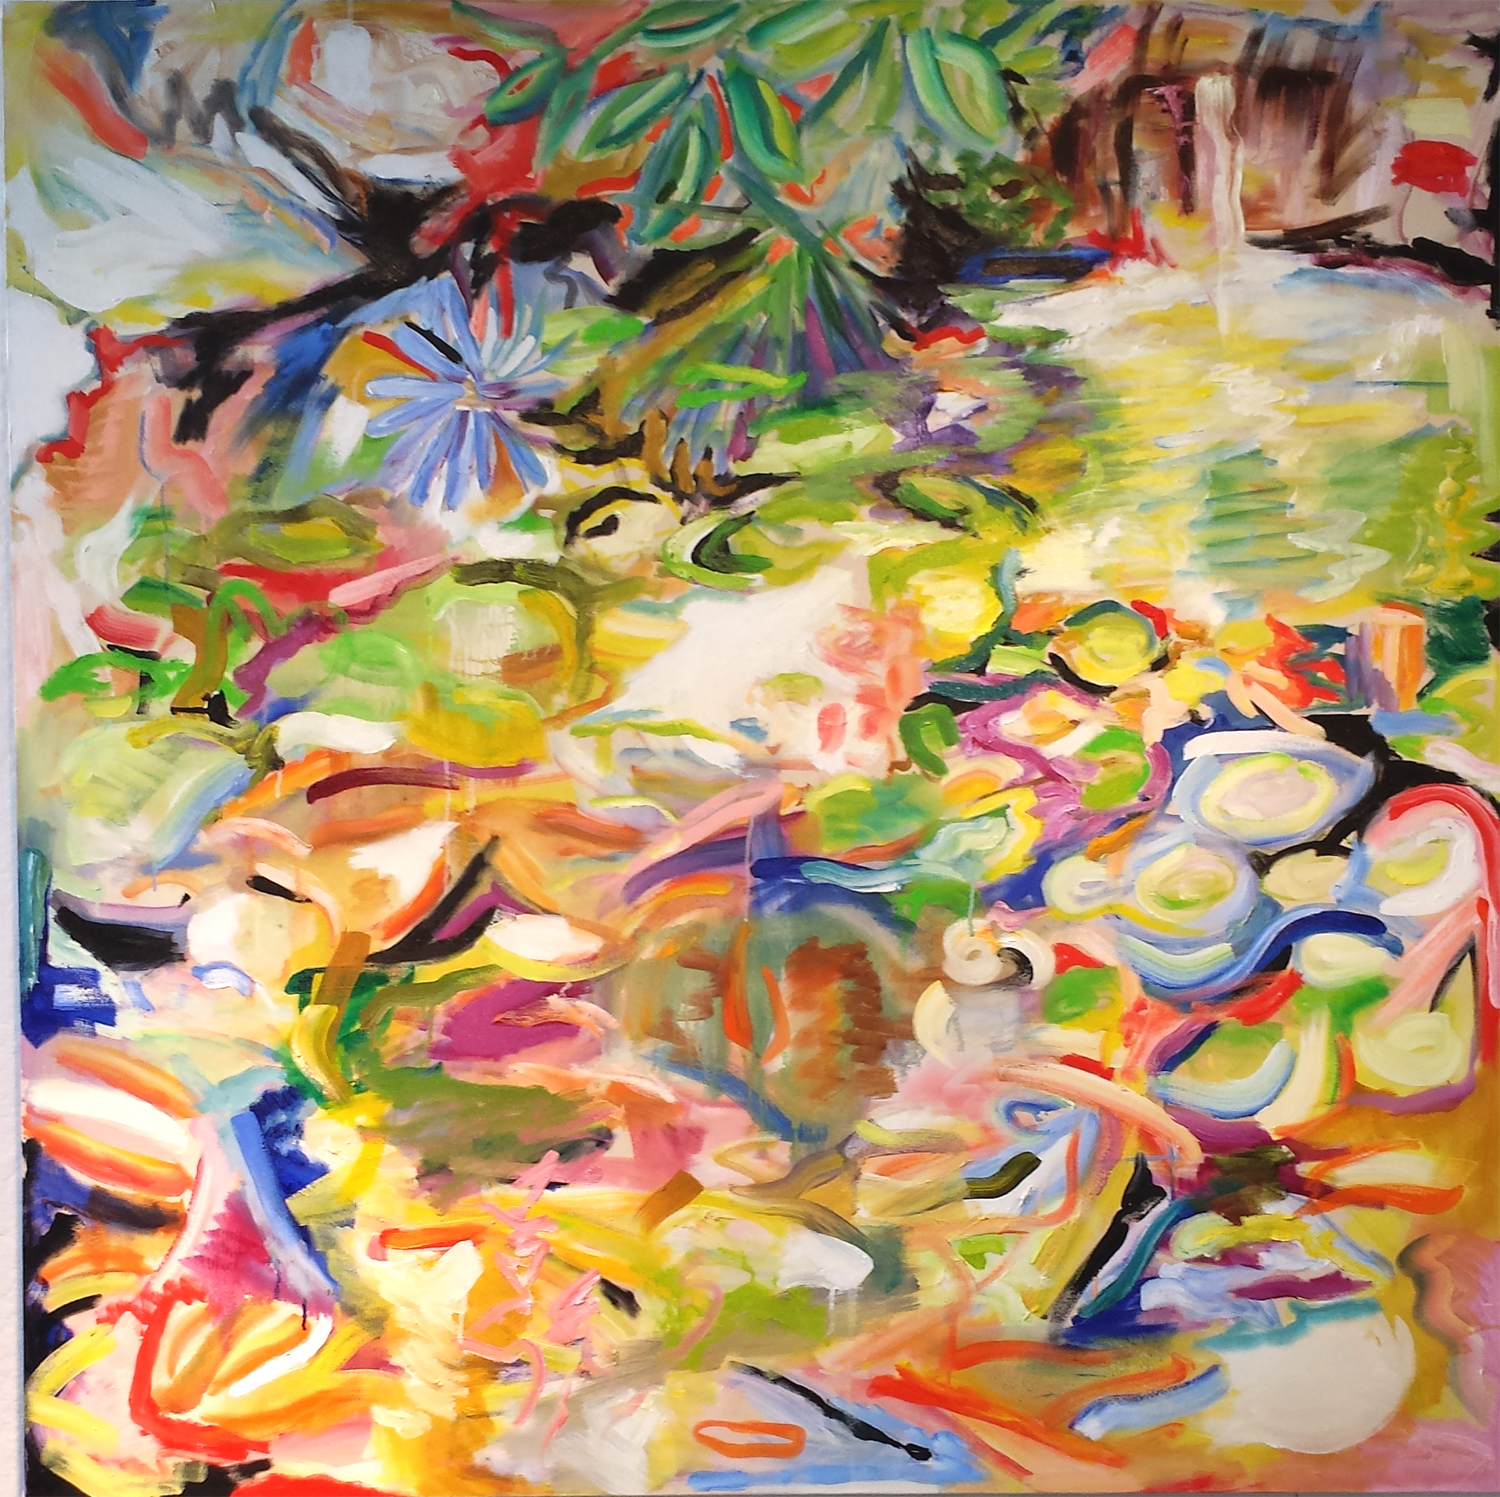 "Koi Pond III, oil on canvas, 60"" x 60"" 2014"